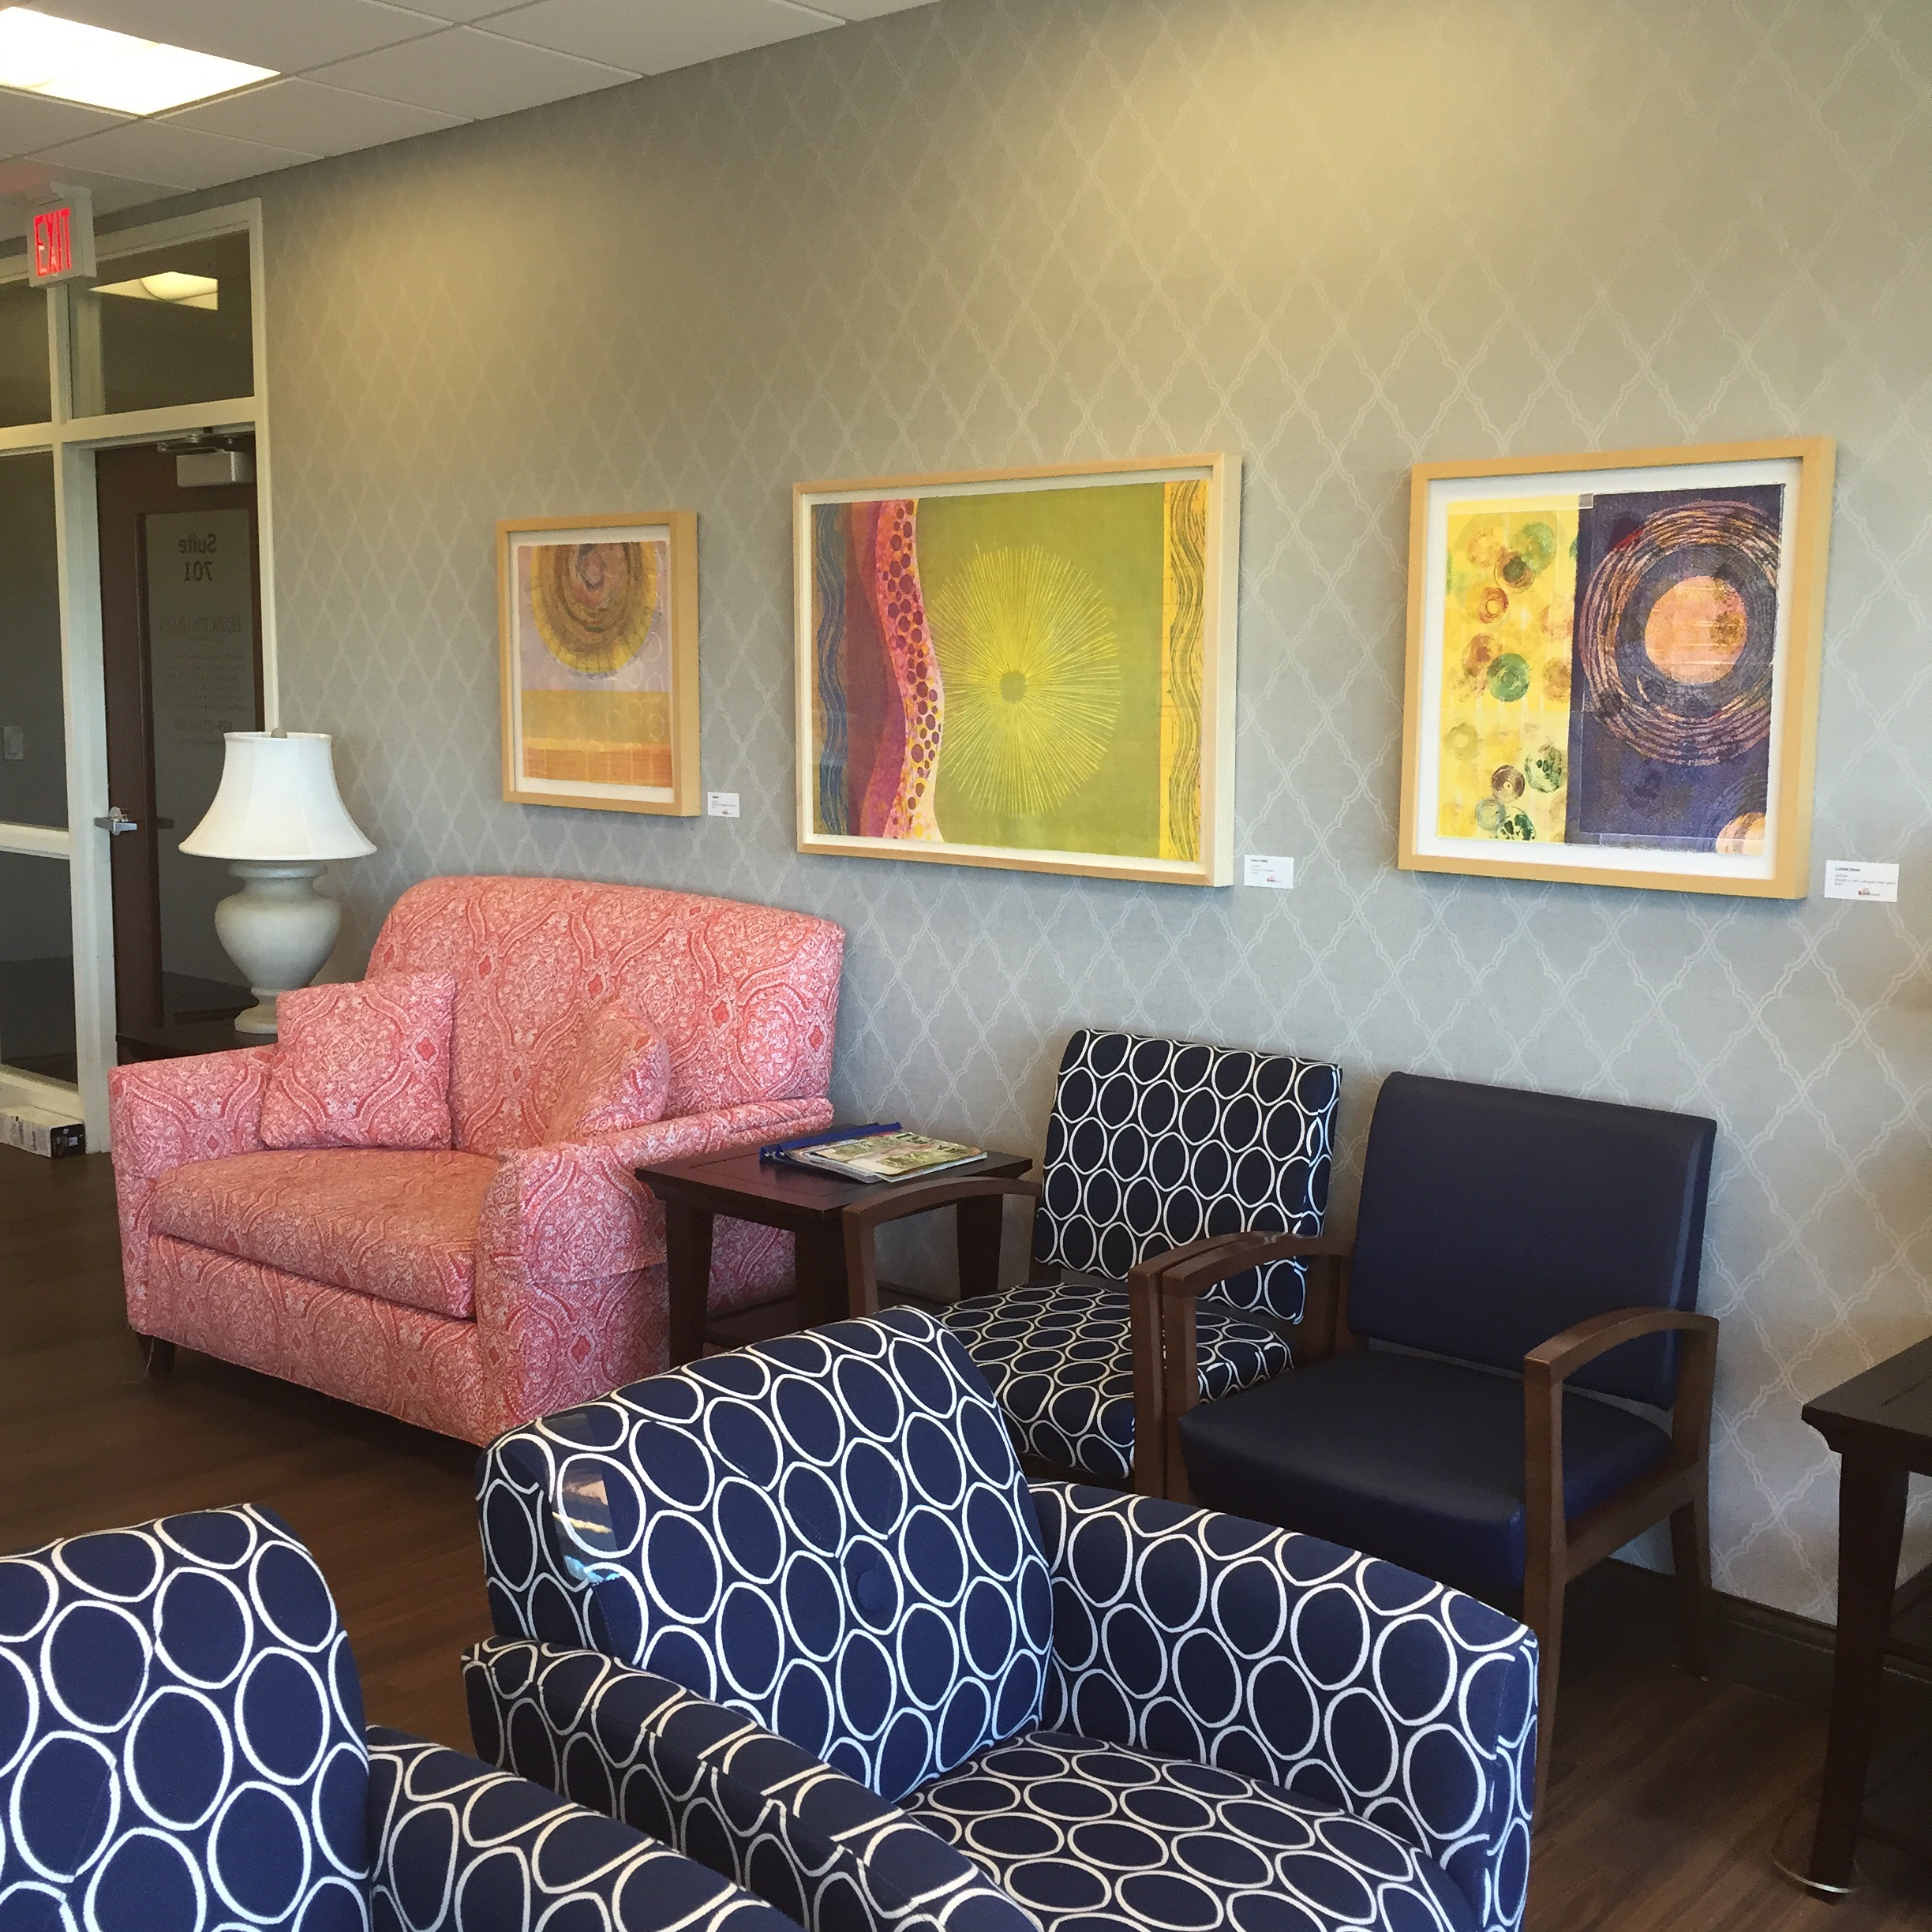 Baptist Health Women's Center, Art Connects Program, Lexington, KY - 2017